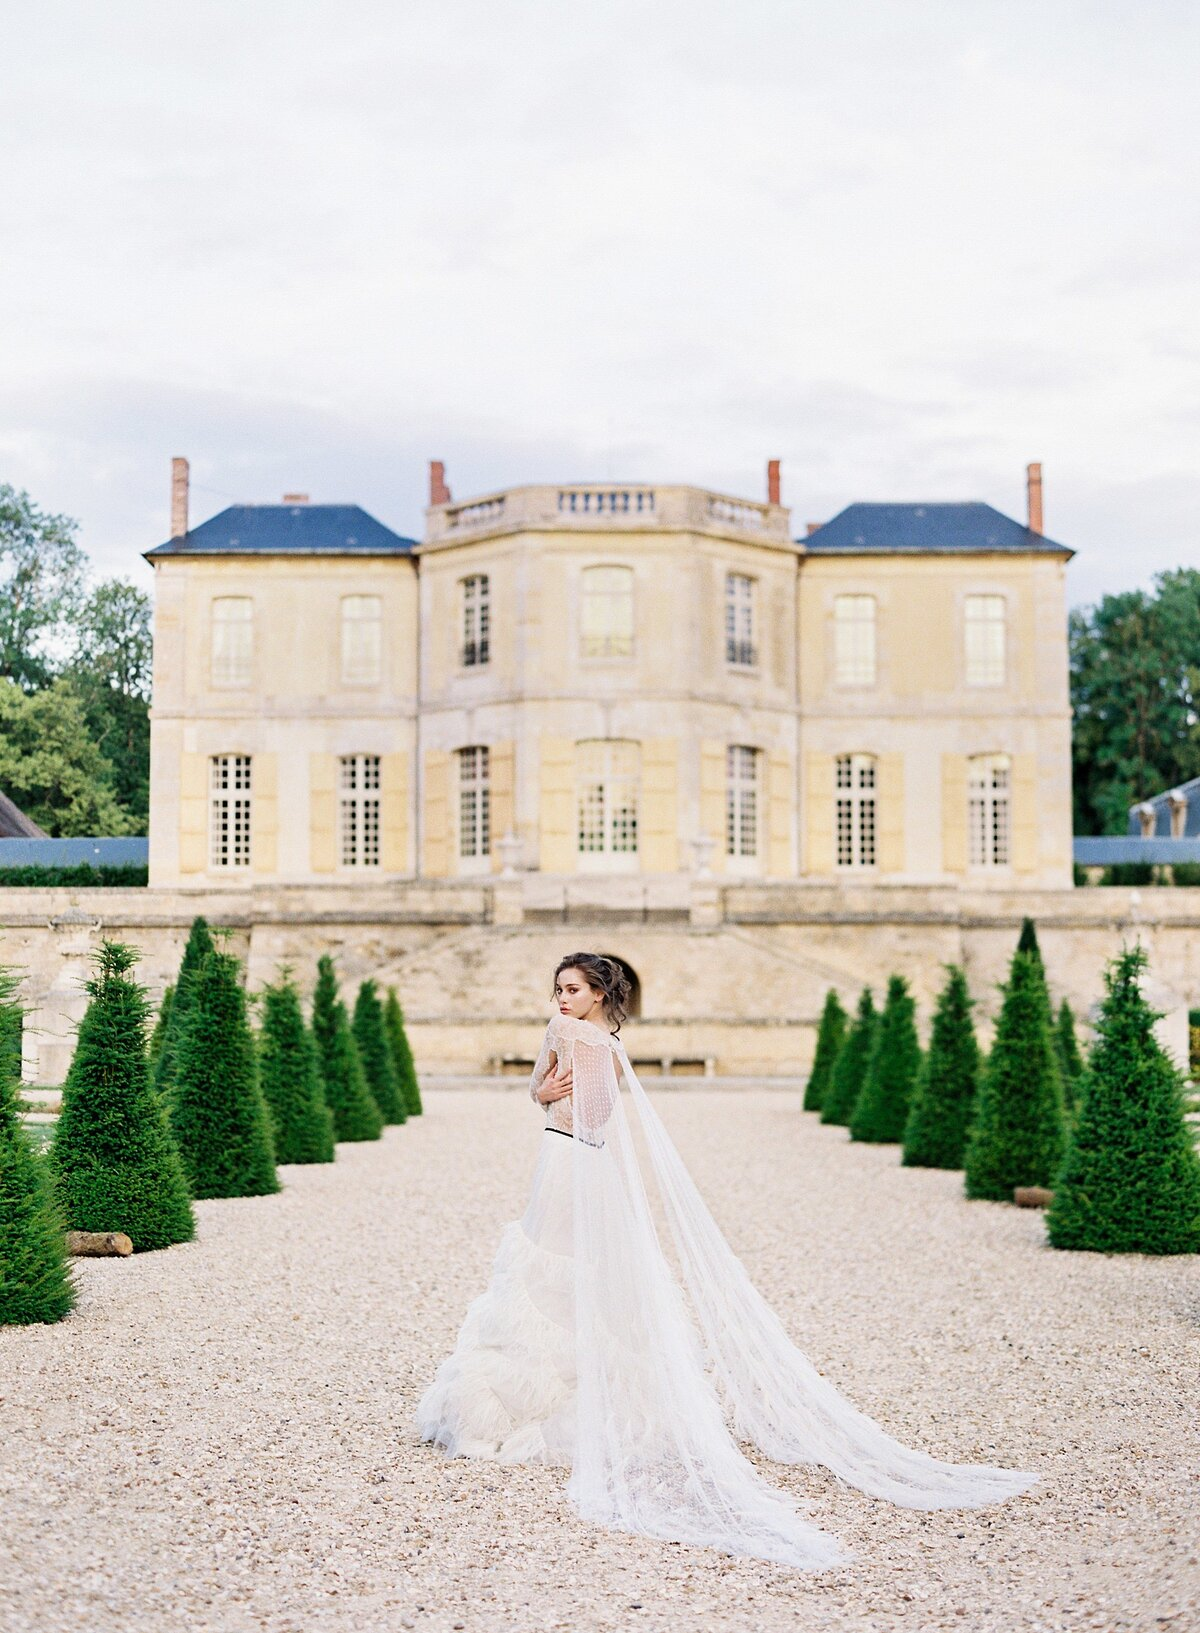 NKT-Events_Wedding-Inspiration-Editorial_Chateau-de-Villette-Bridal_0202